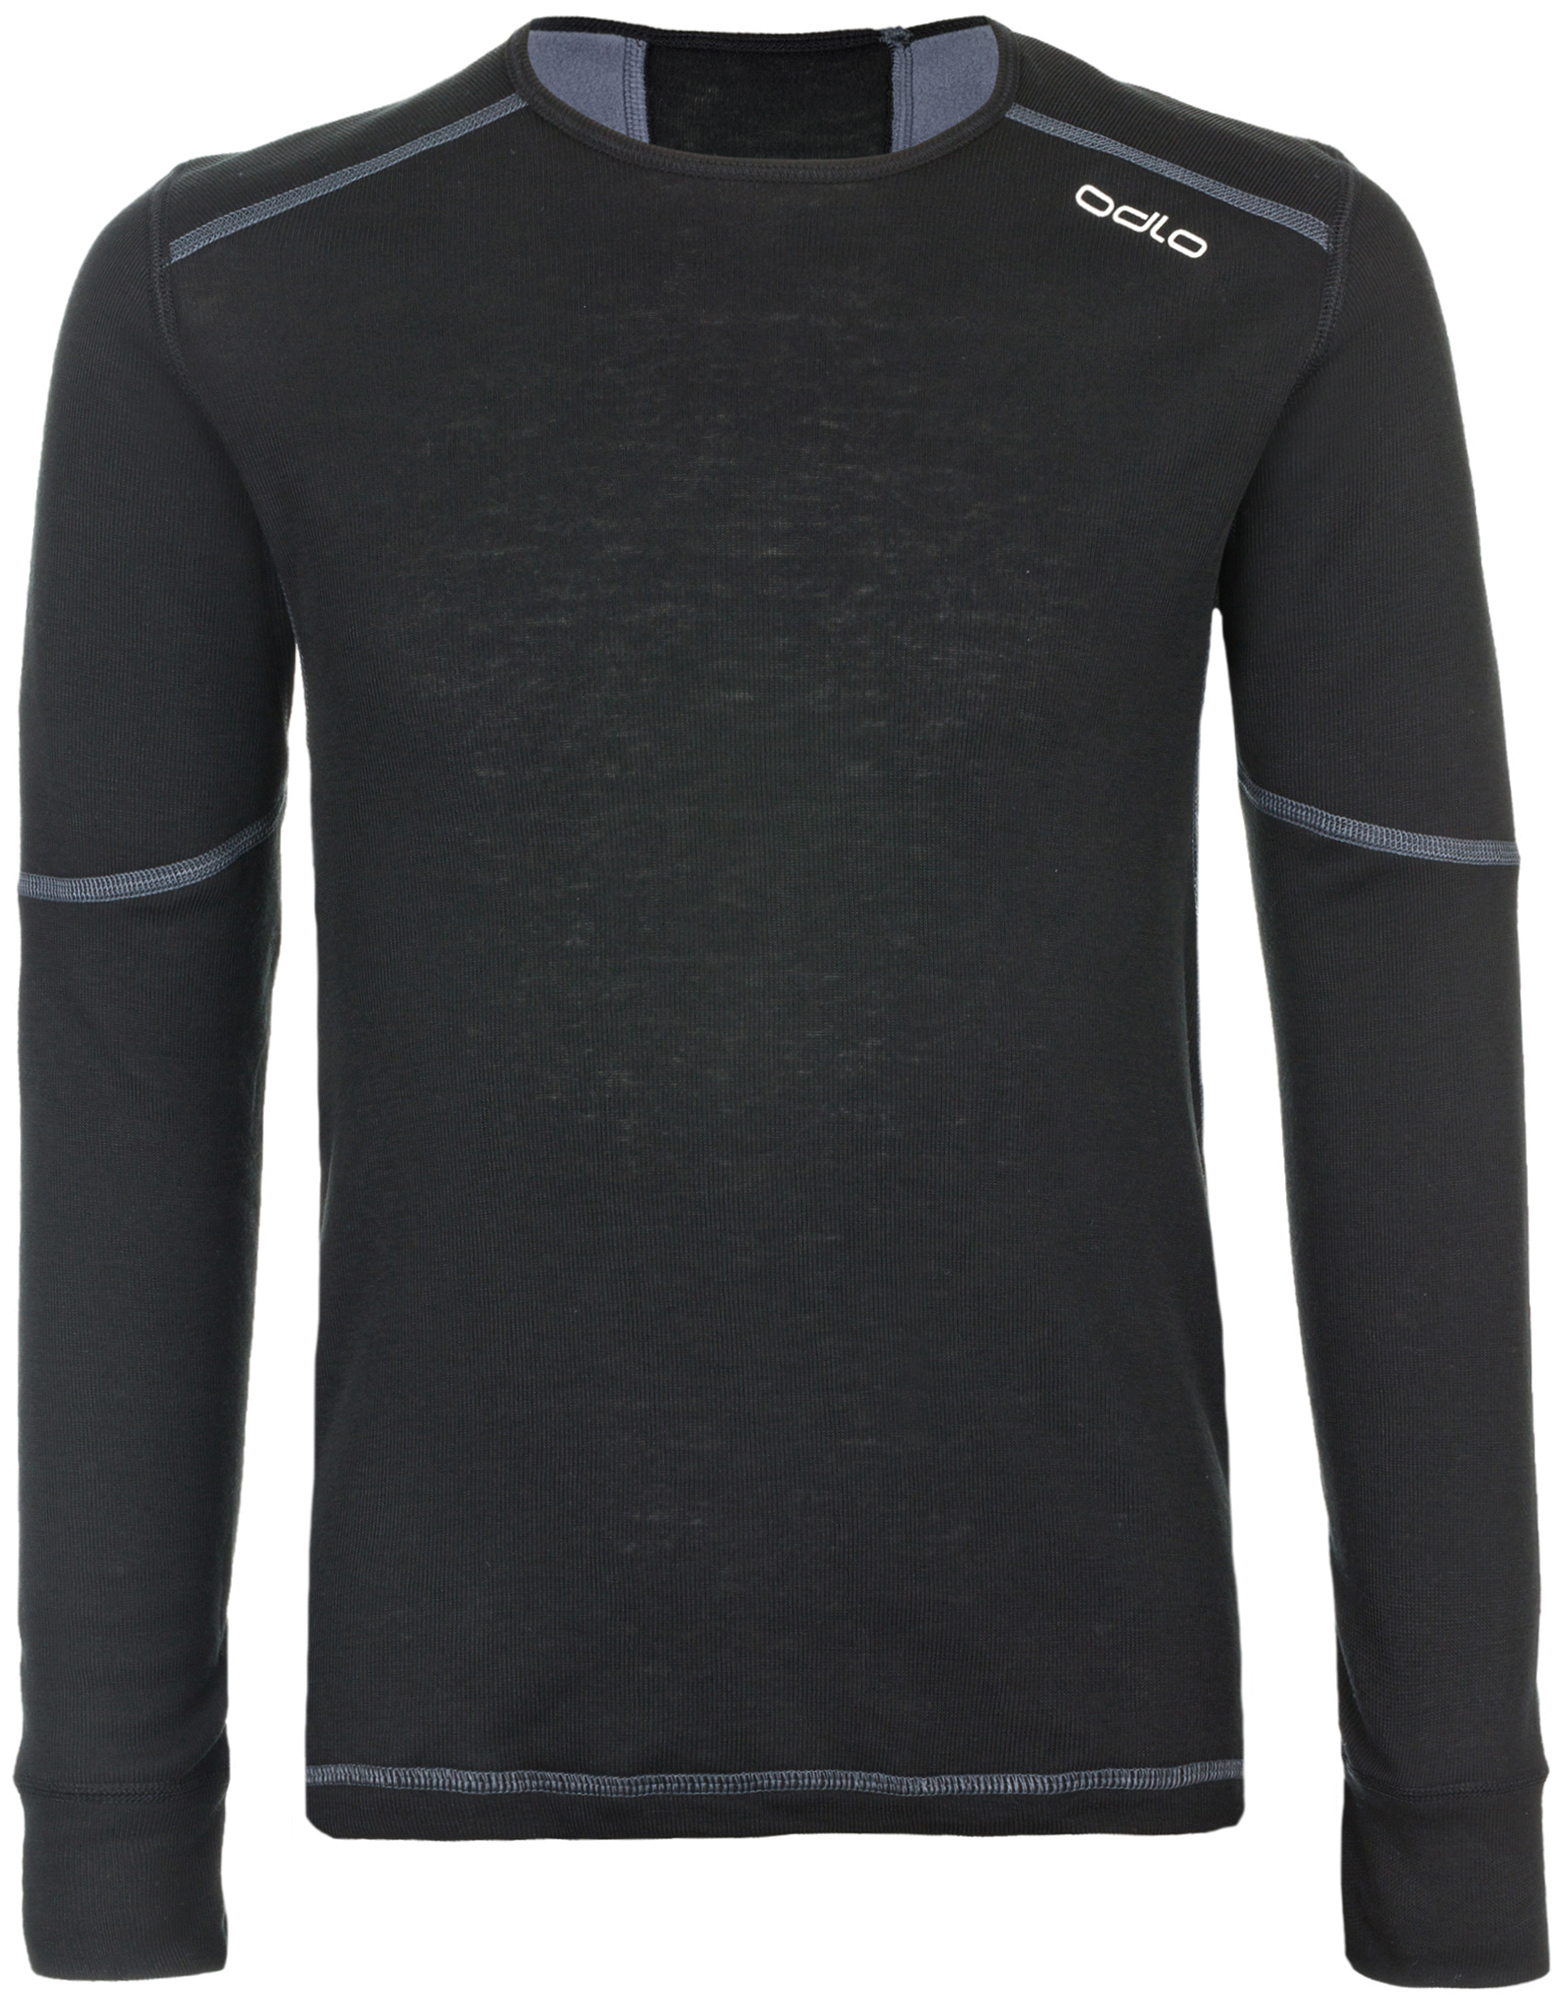 Odlo Фуфайка для мальчиков Odlo First Layer Top X-Warm, размер 152 цена